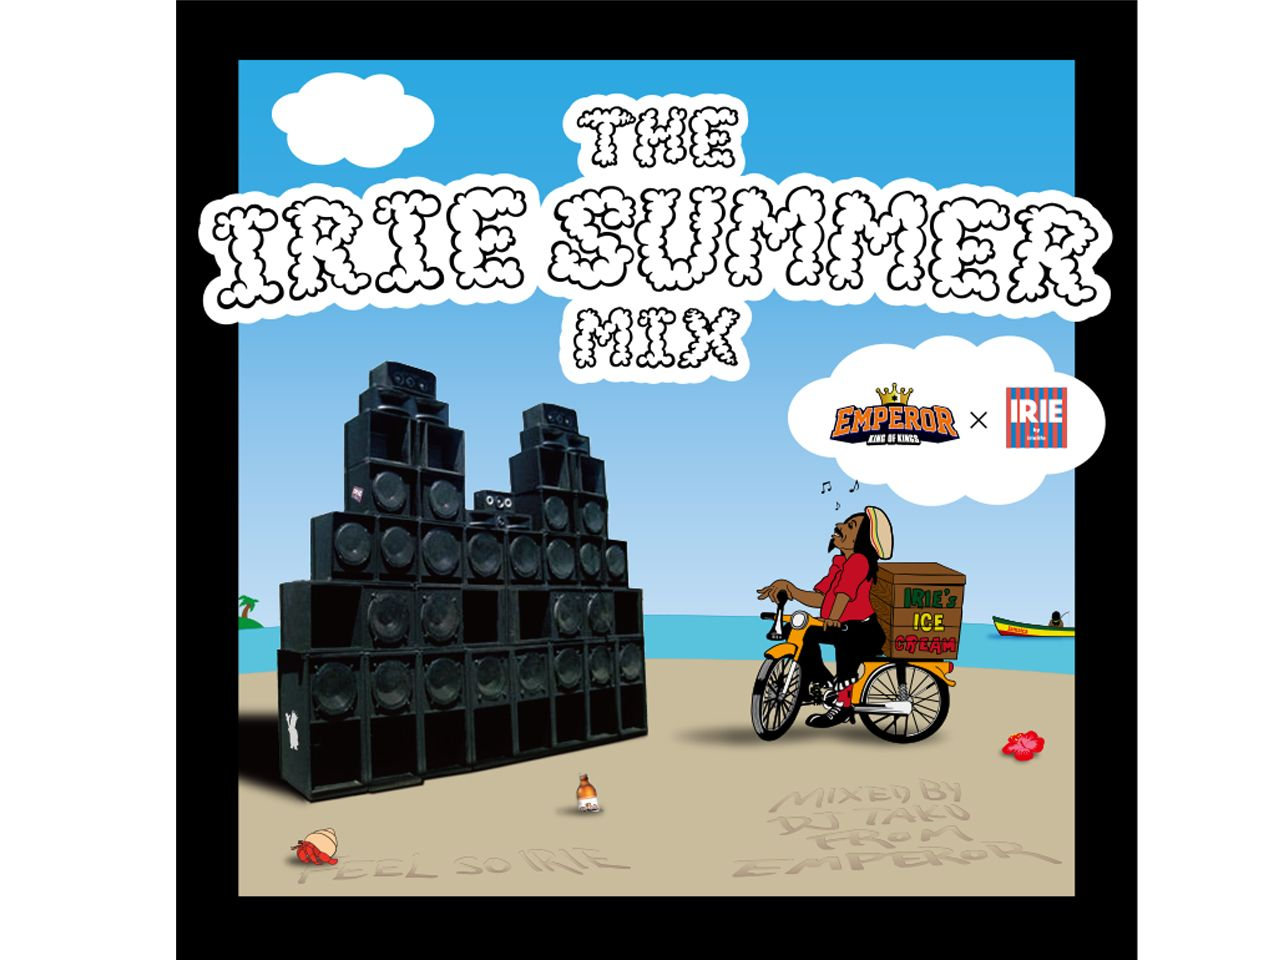 THE IRIE SUMMER MIX - mix by DJ TAKU from EMPEROR